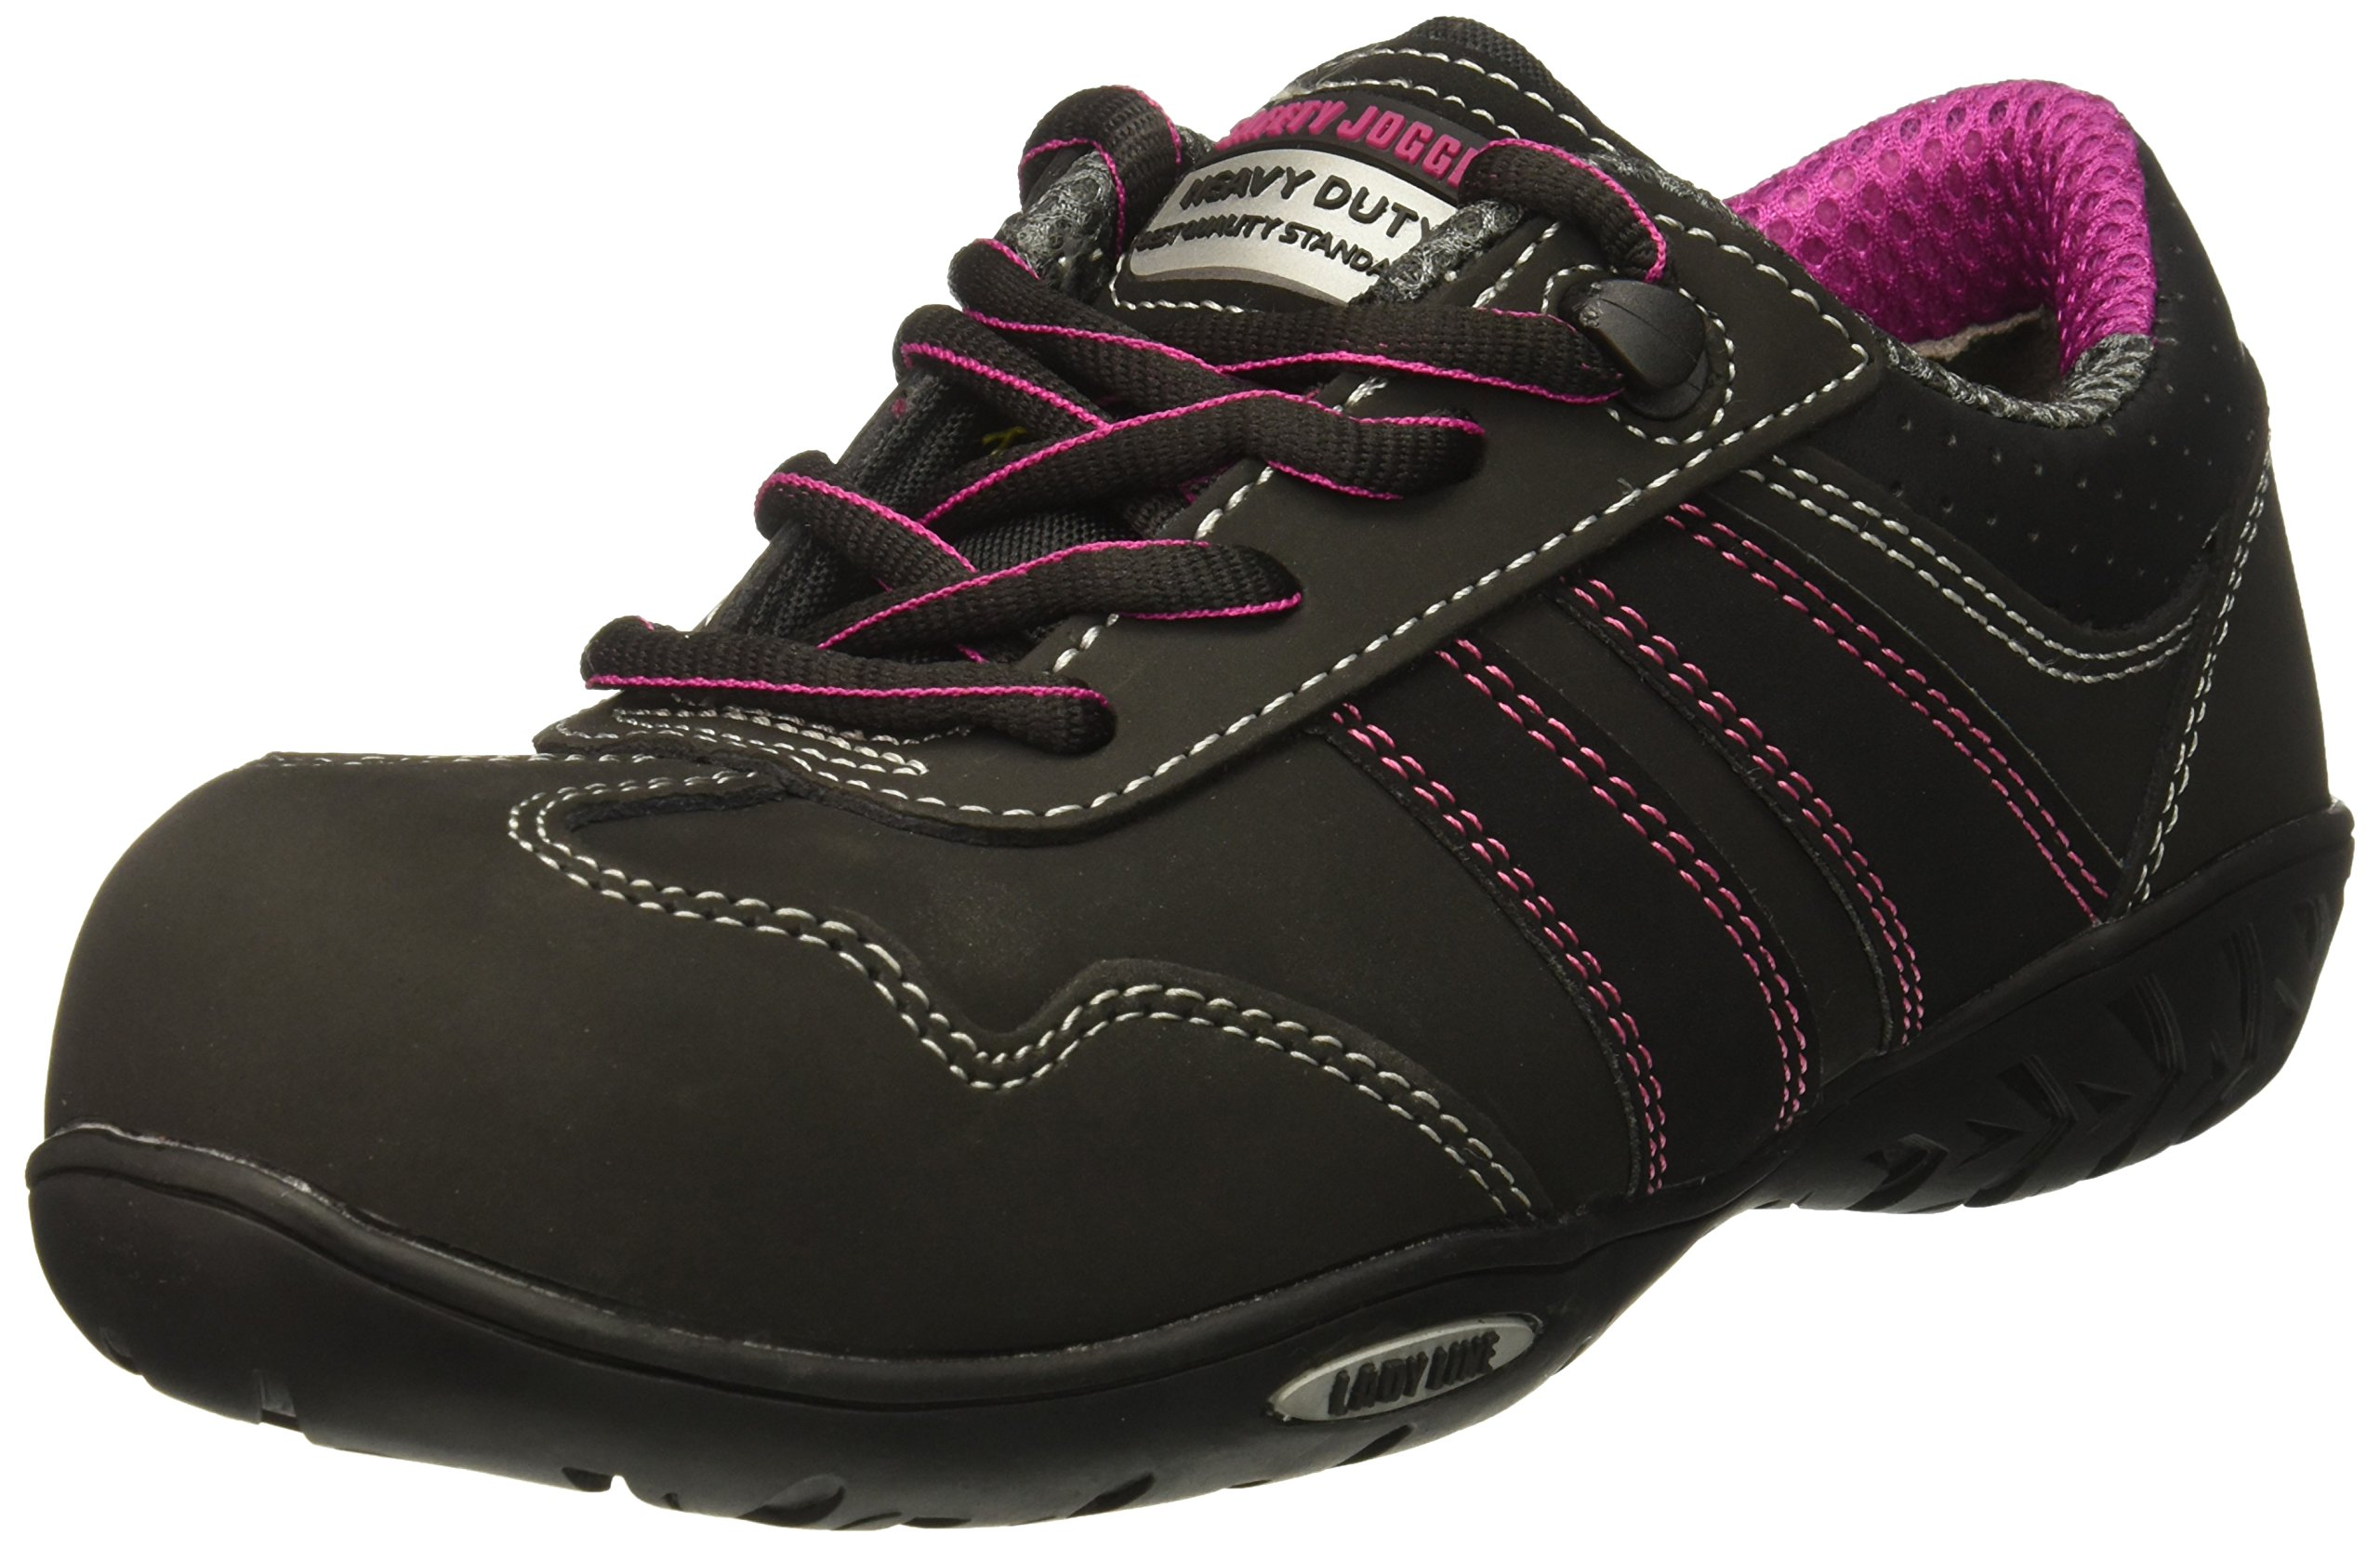 SAFETY JOGGER CERES Women's Safety Toe Lightweight EH PR Water Resistant Shoe, W 6, Black